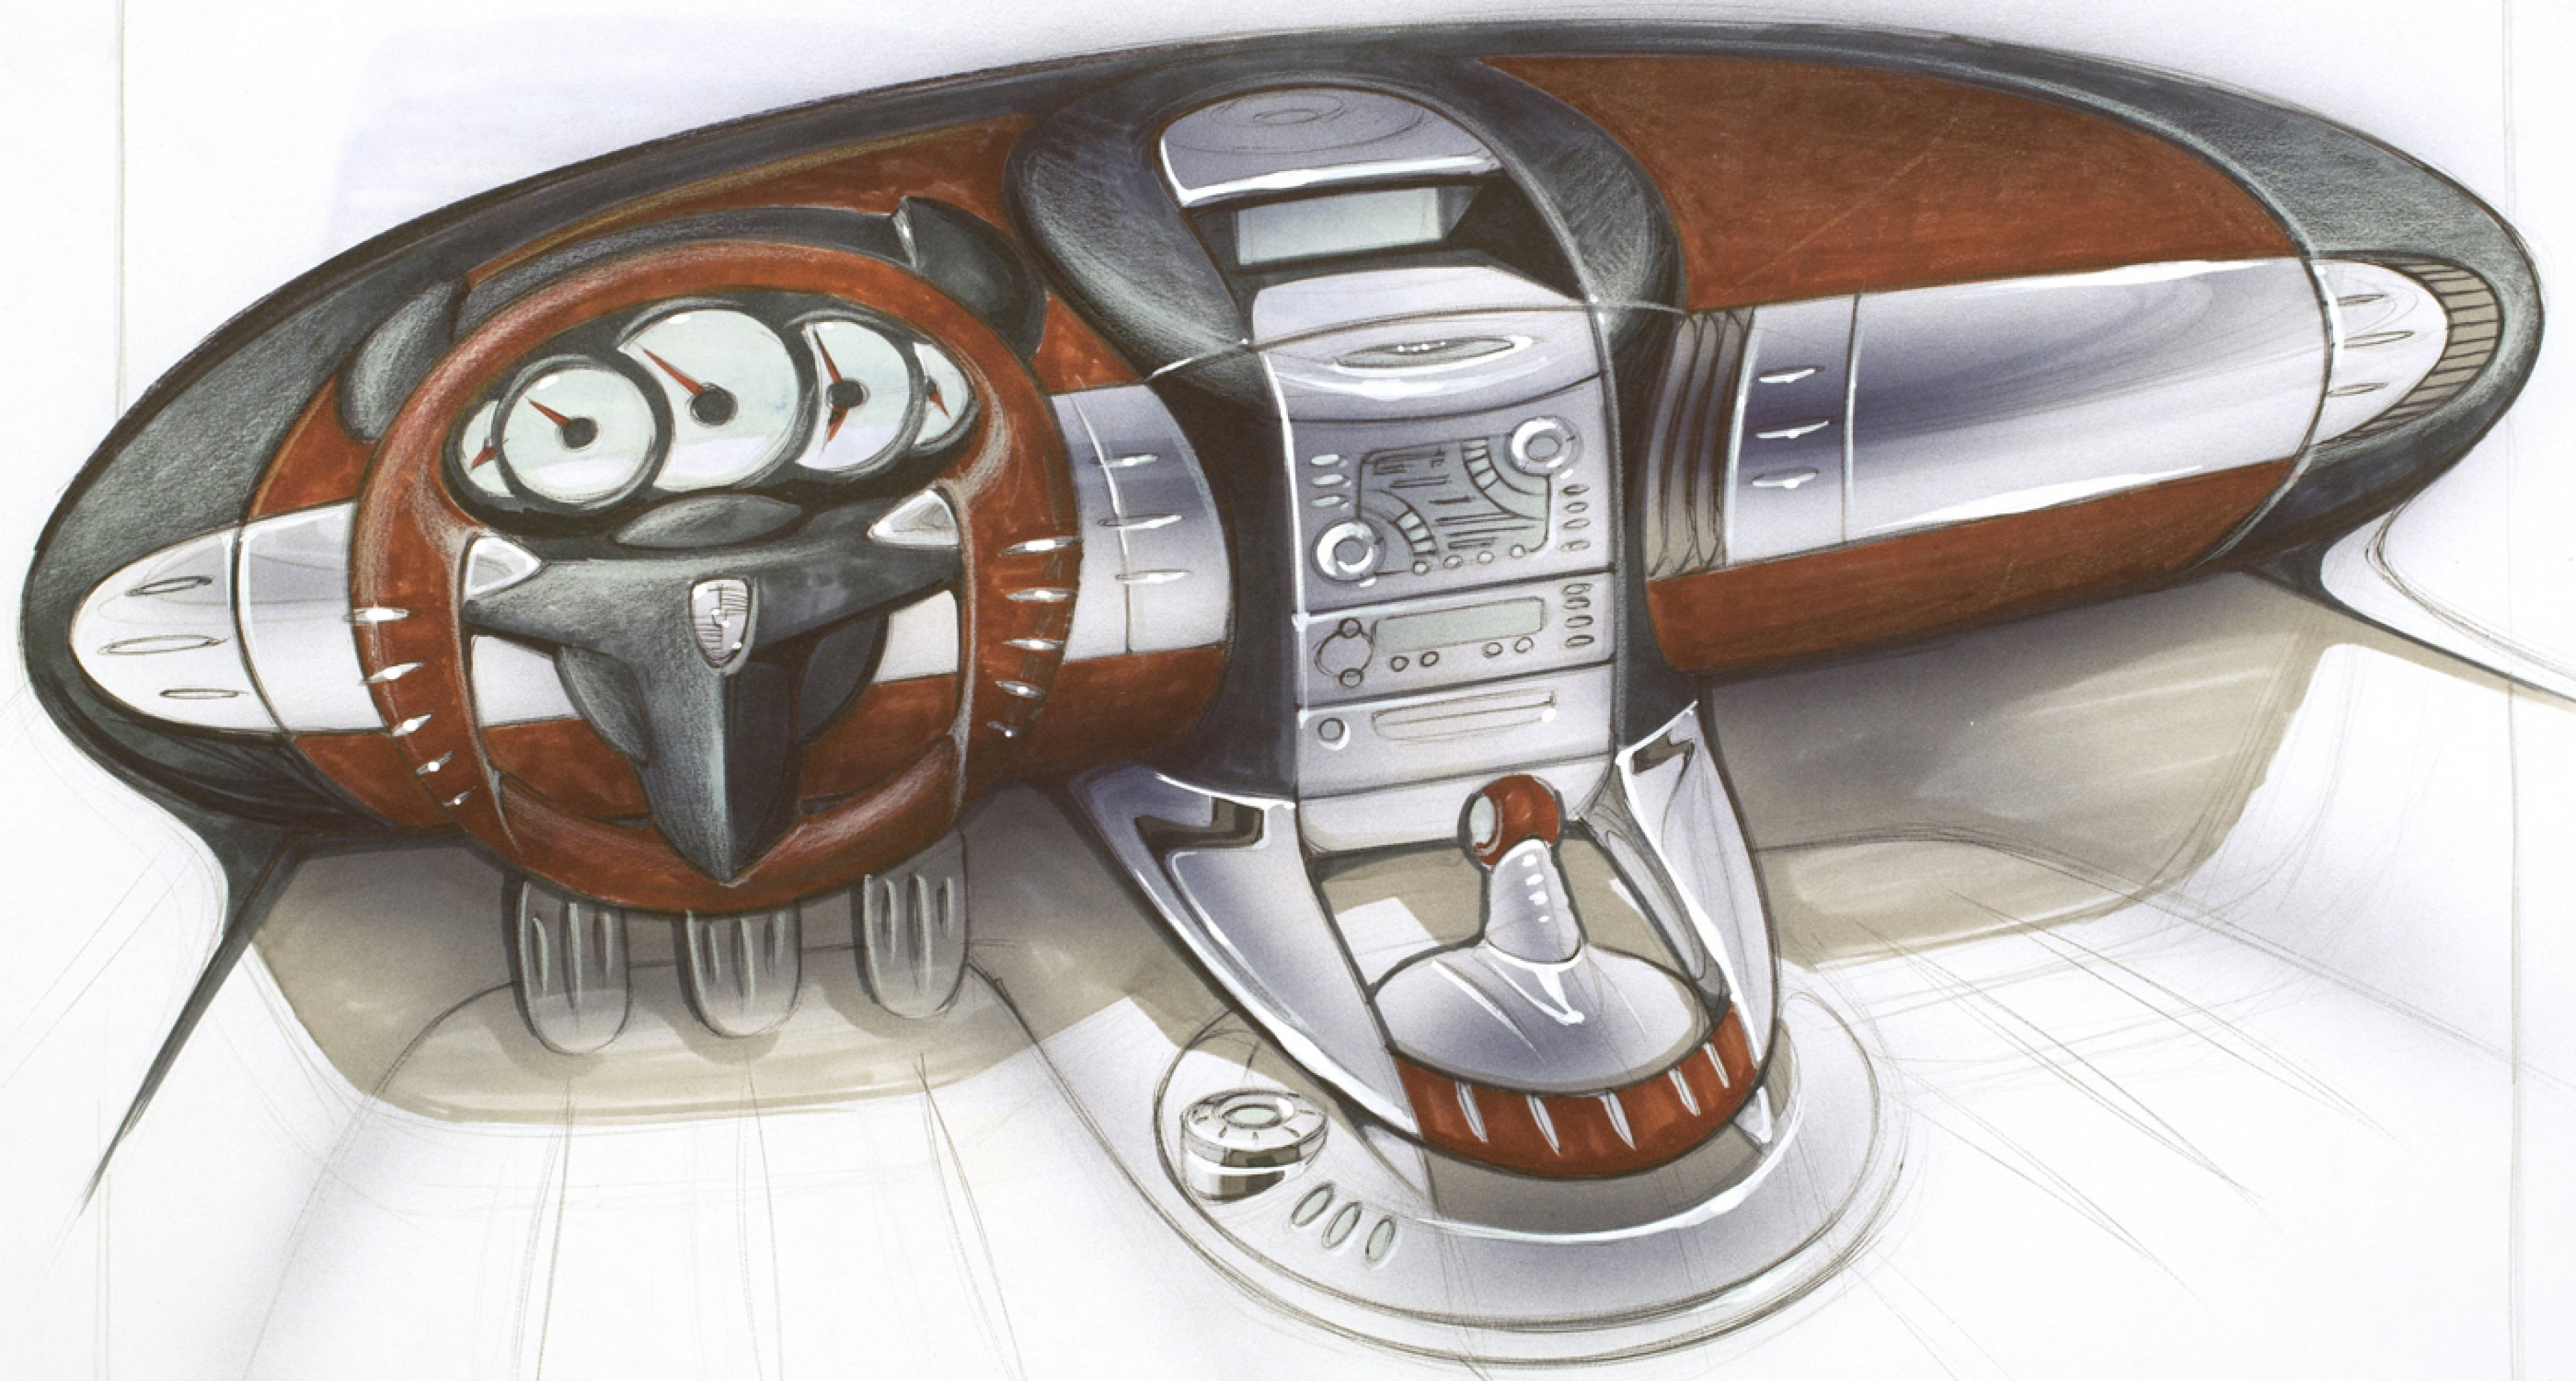 A design drawing from 1996.